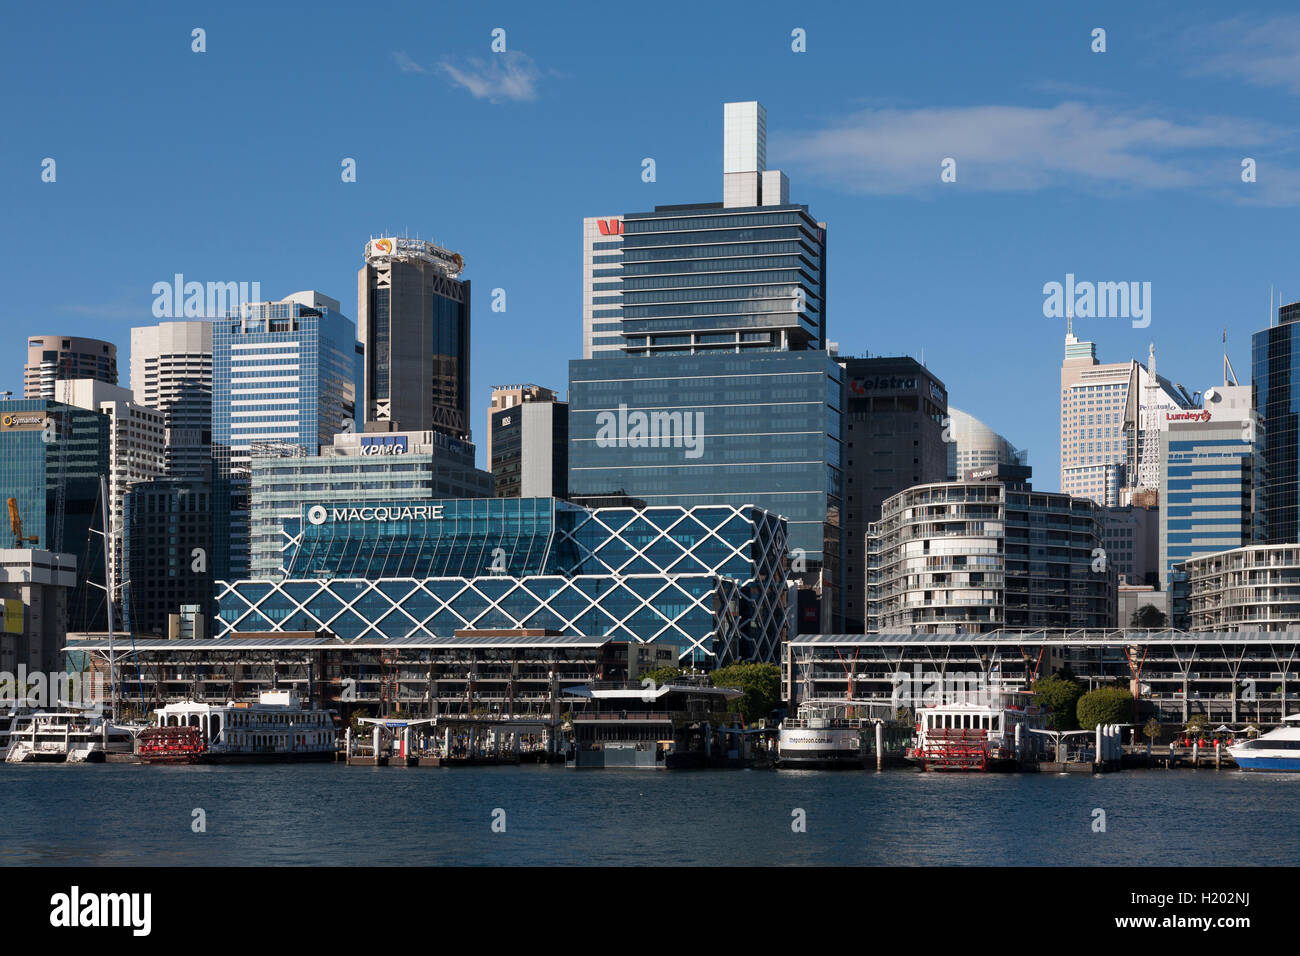 Kings wharf on a beautiful sunny day with the Macquarie Bank headquarters-Darling Harbour Sydney Australia - Stock Image